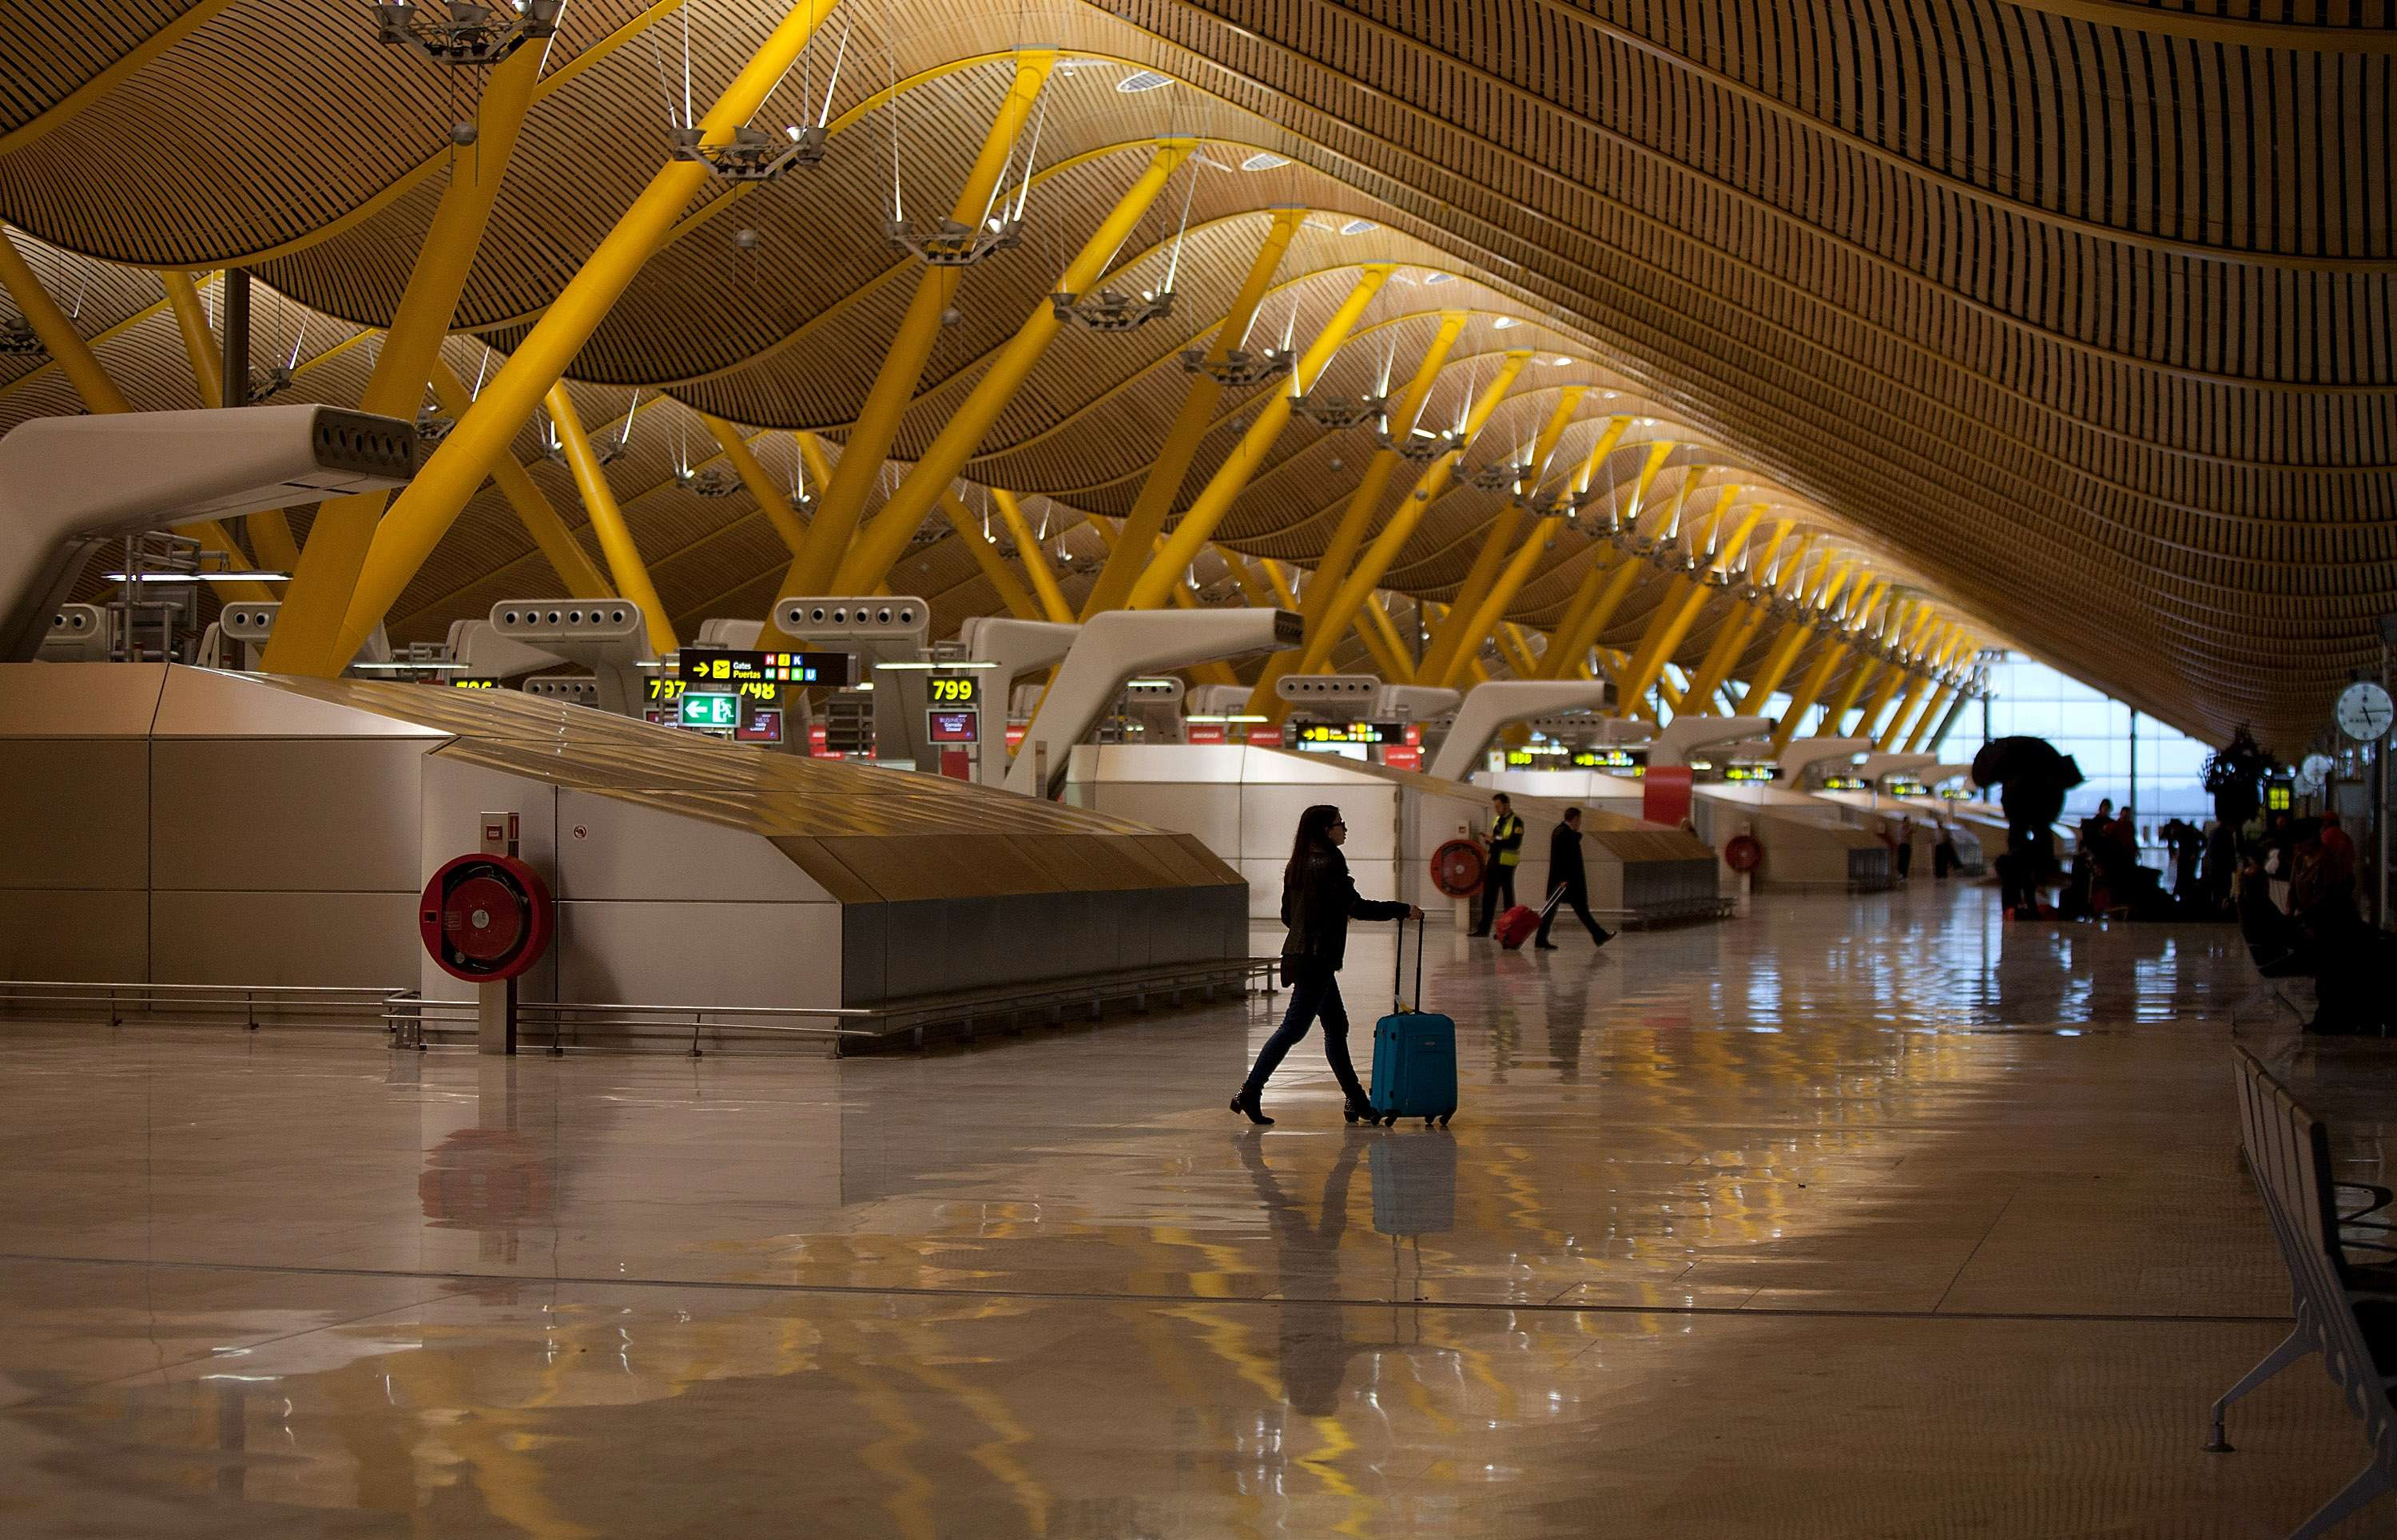 Aeropuerto de Barajas. Foto: Getty Images